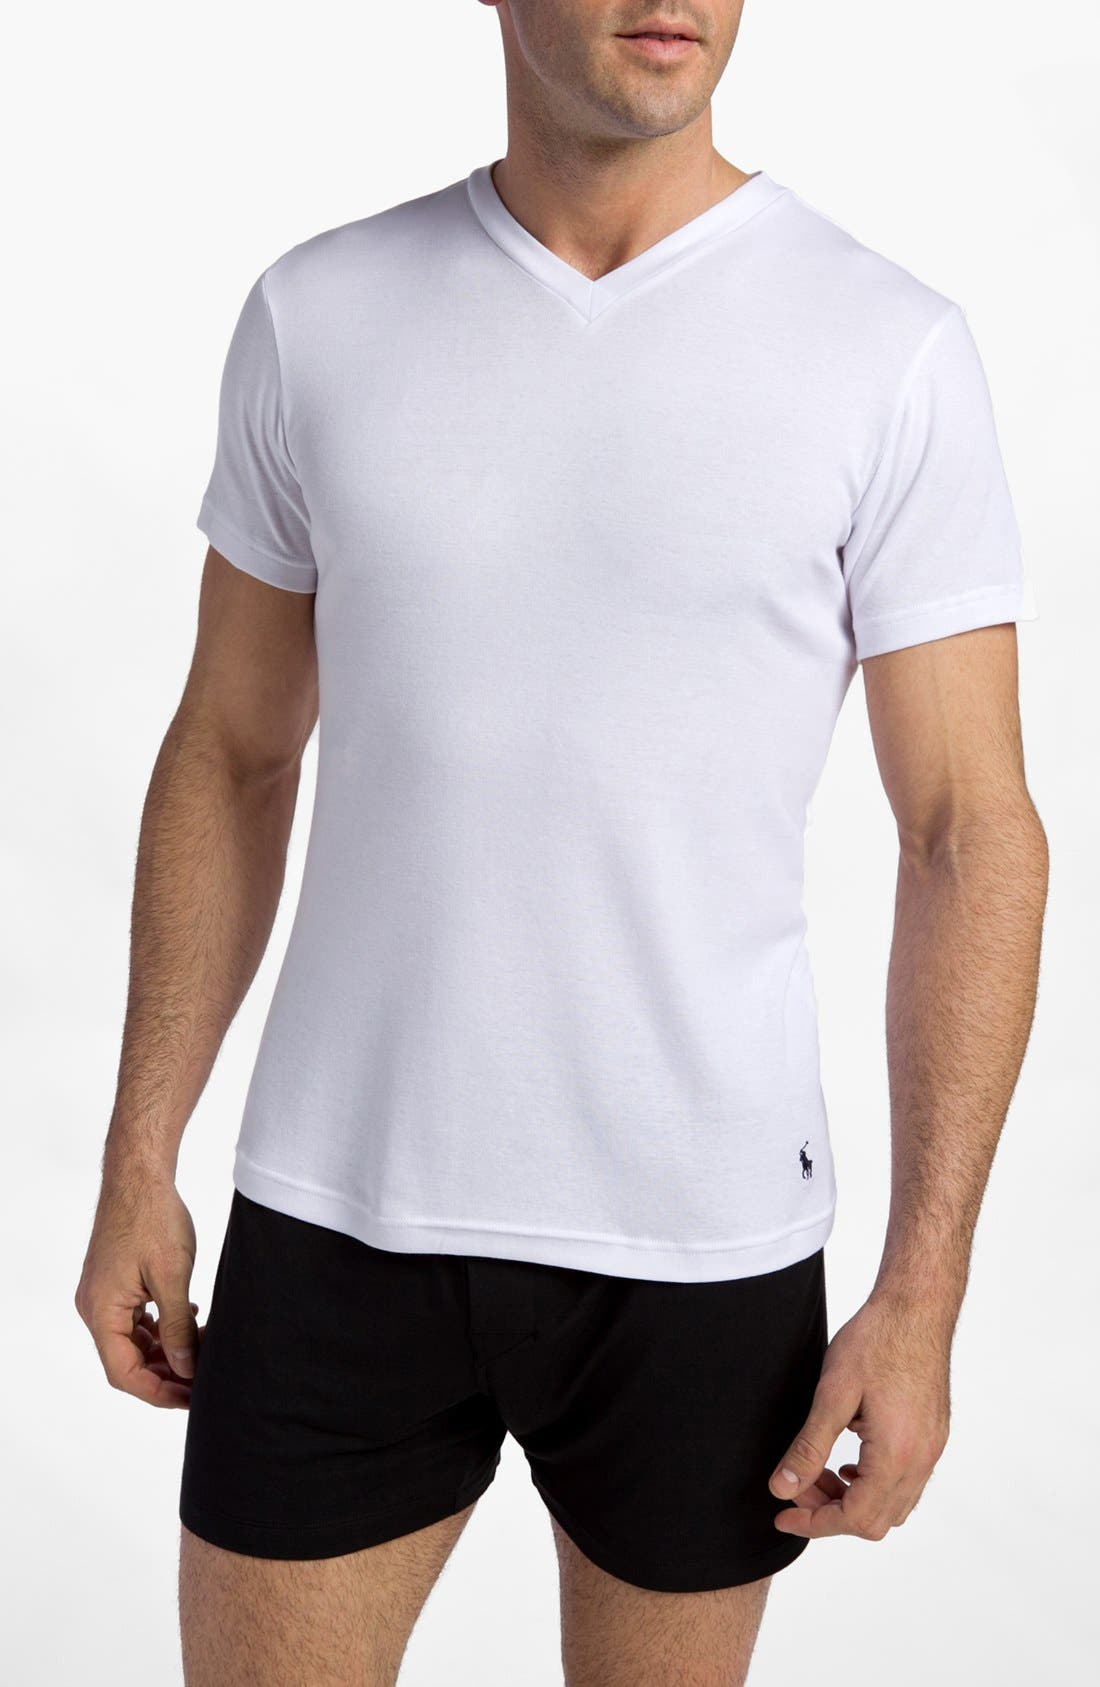 Alternate Image 1 Selected - Polo Ralph Lauren 2-Pack V-Neck T-Shirt (Tall)